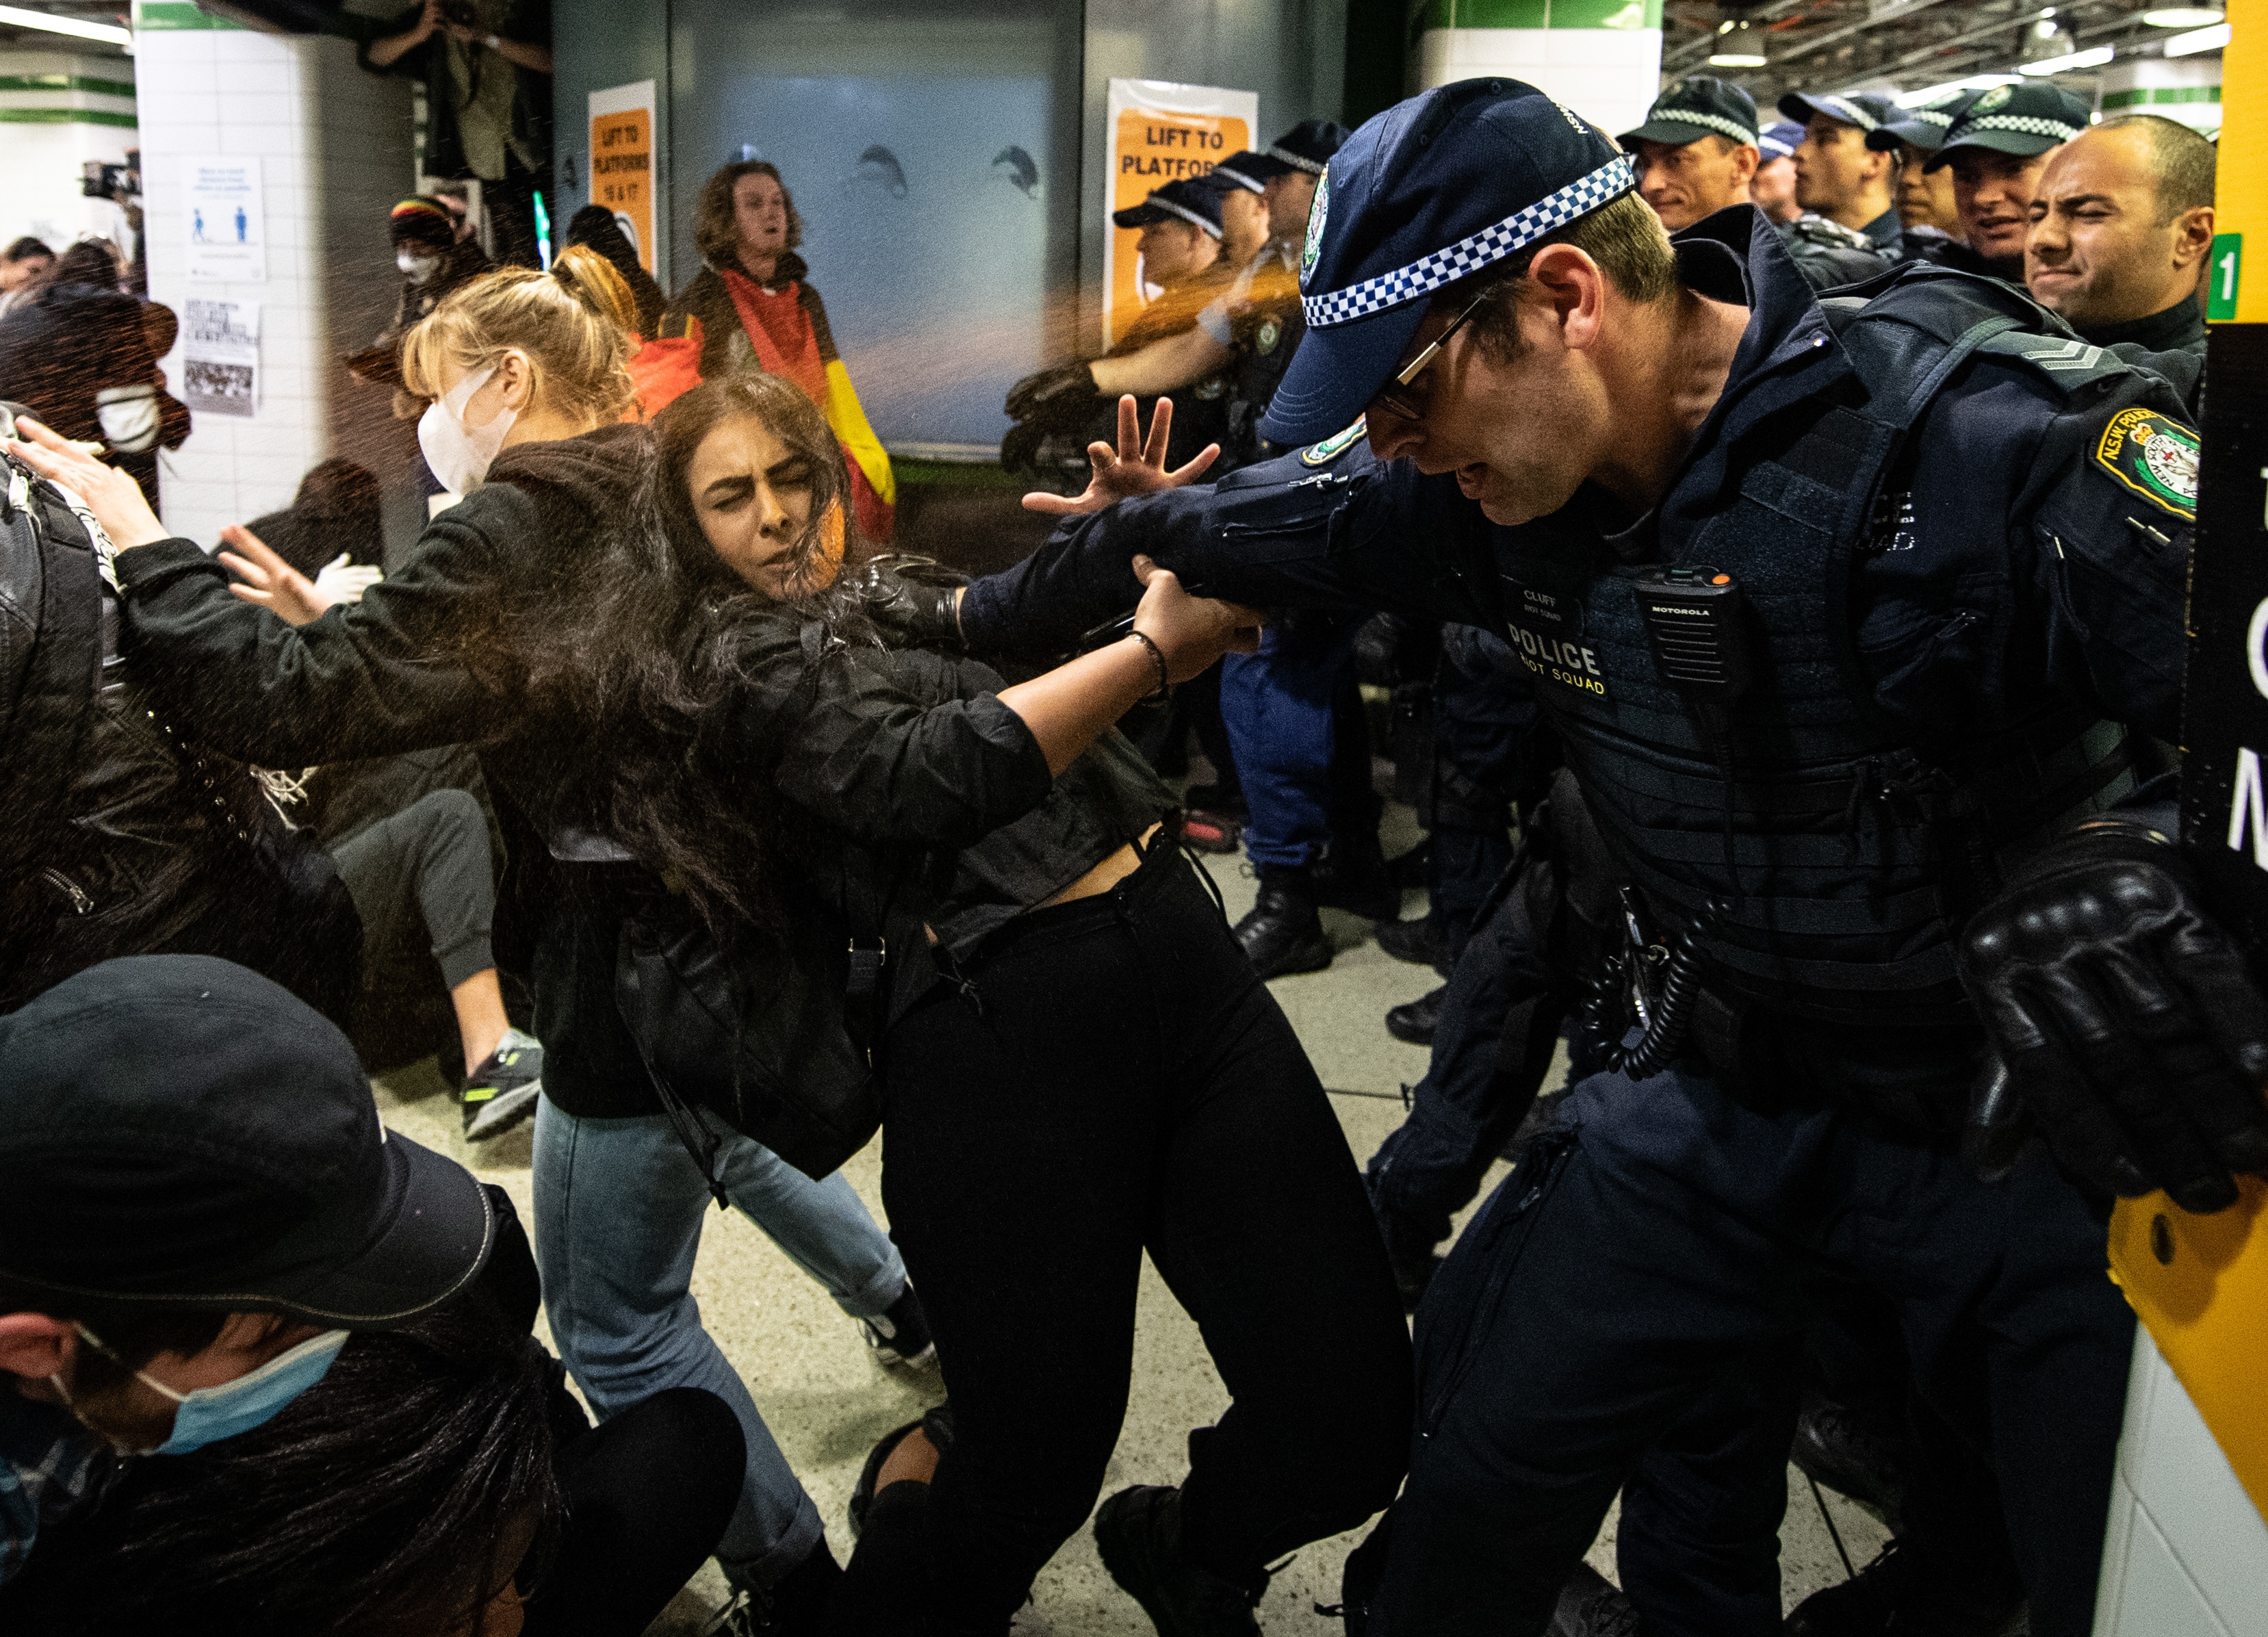 Police spray protesters with pepper spray inside Central Station after a Black Lives Matter rally in Sydney.